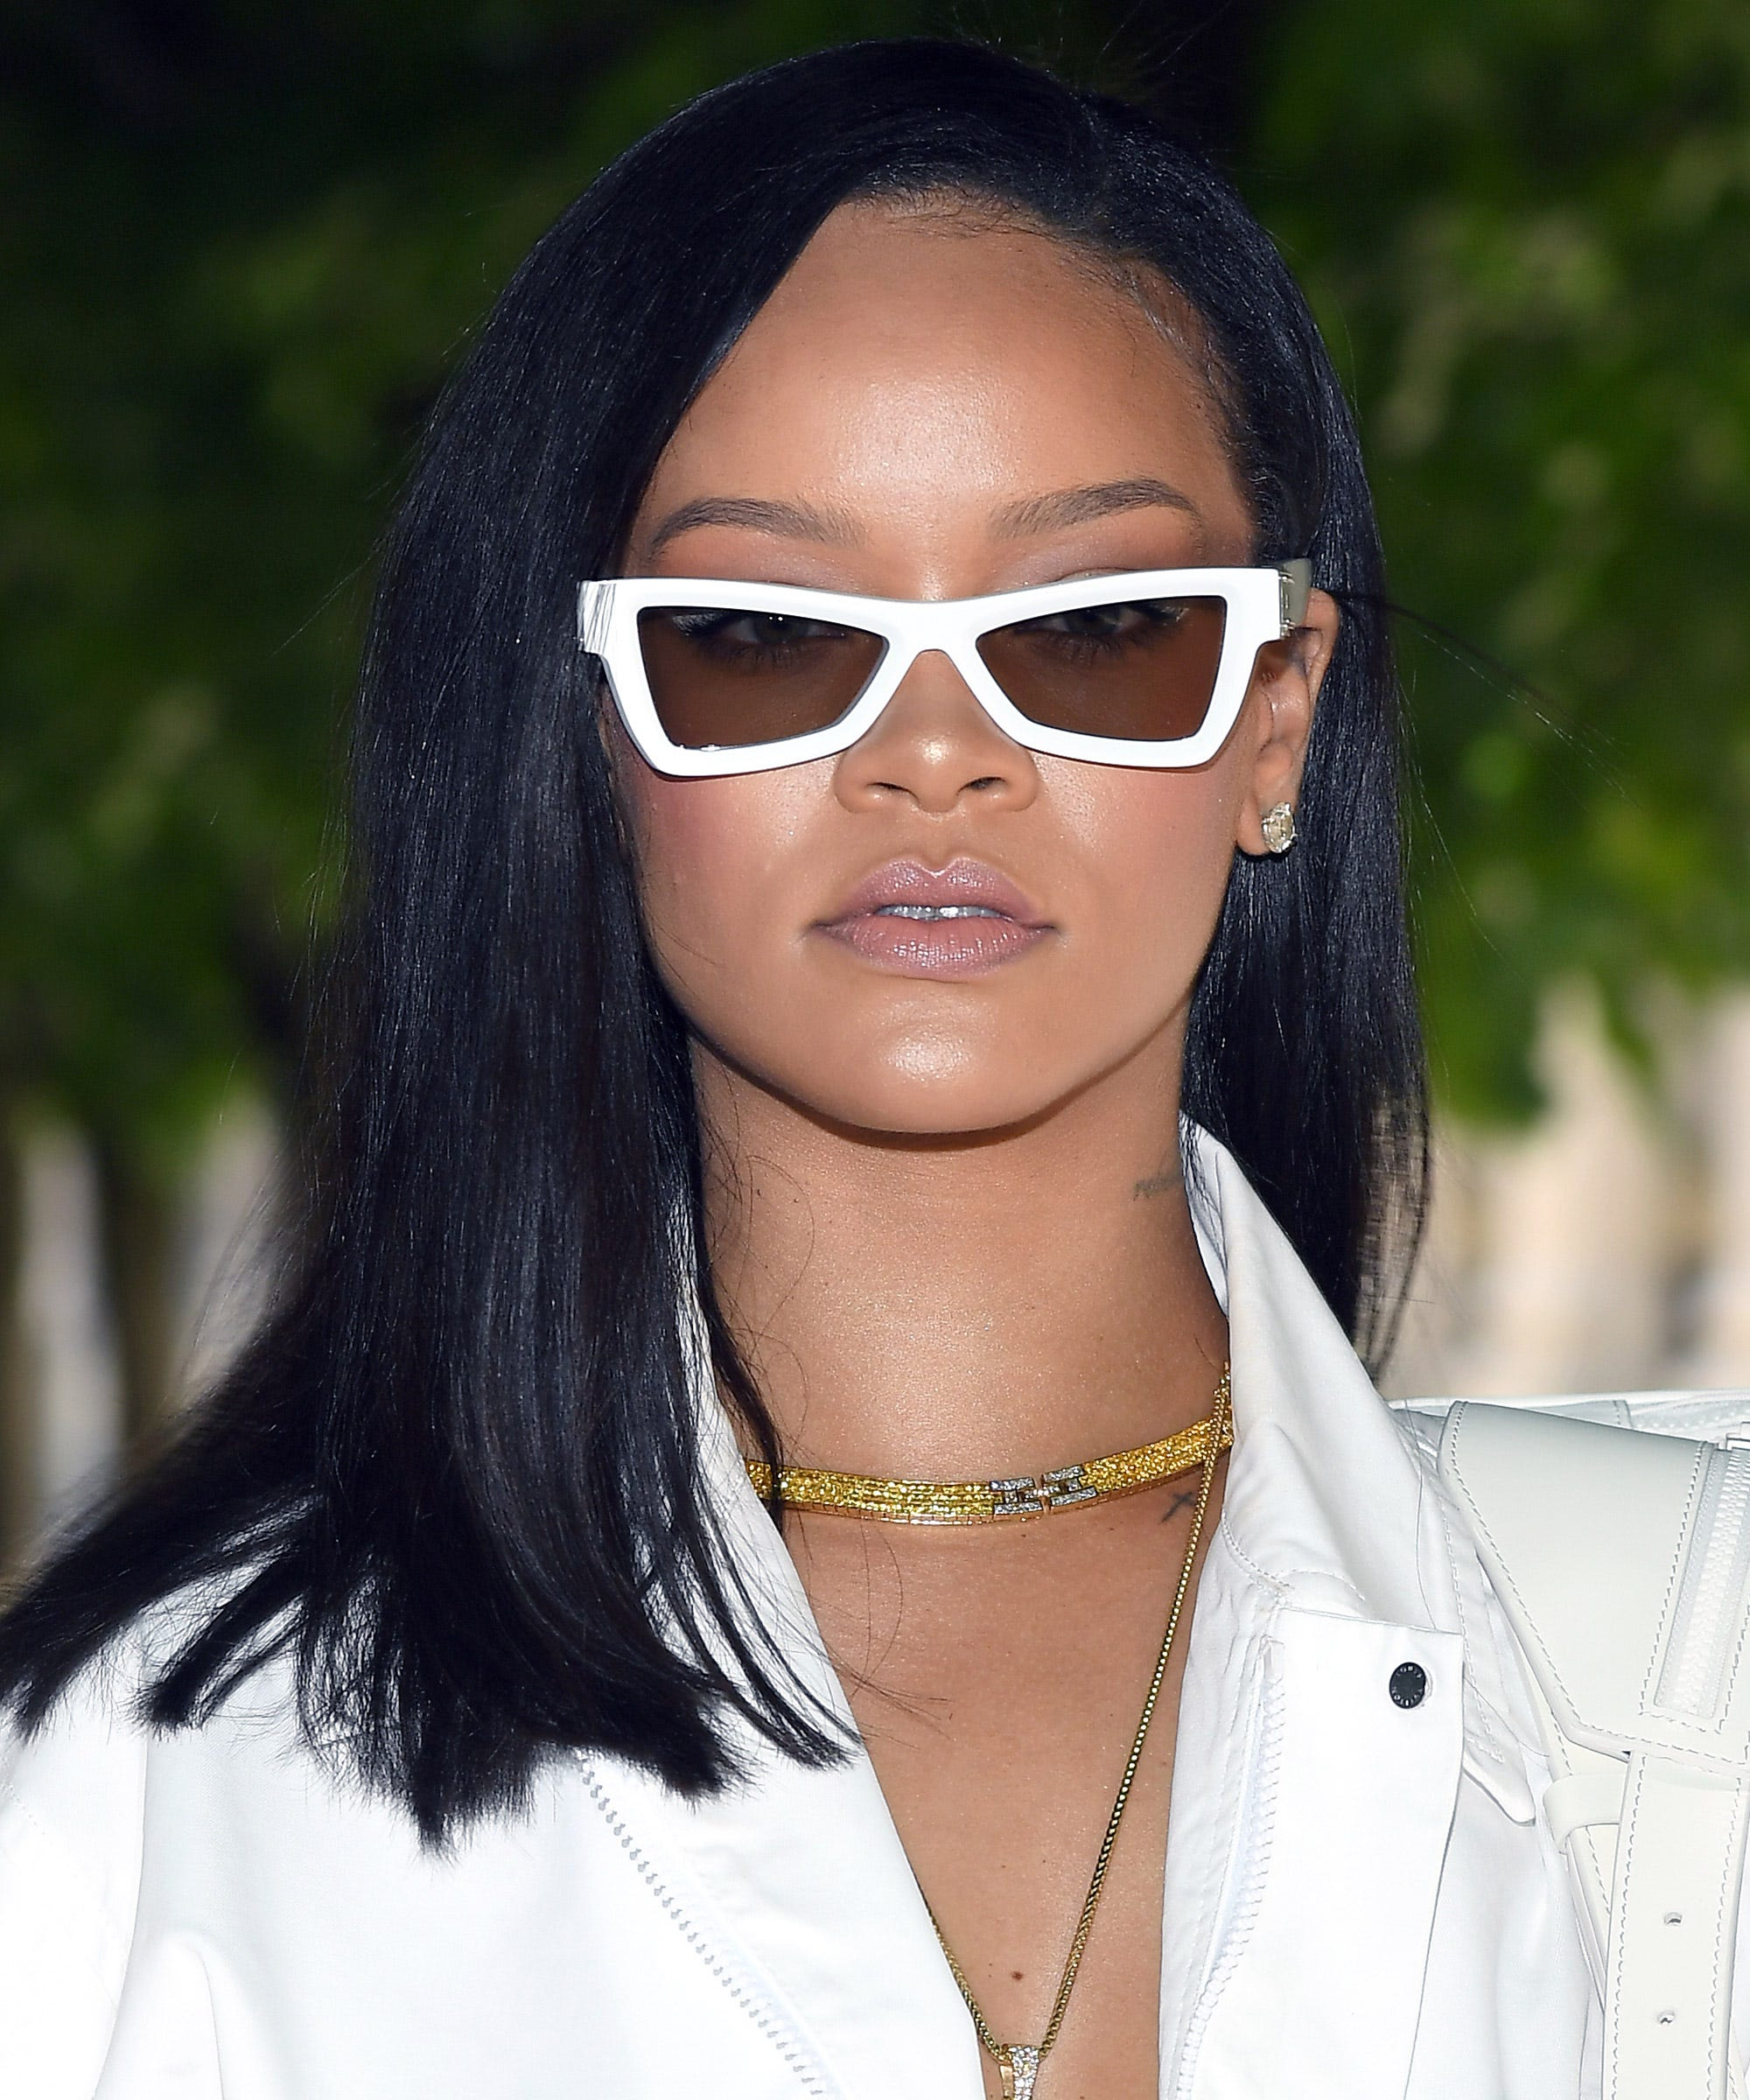 This H&M Collection Has Rihanna's Name Written All Over It